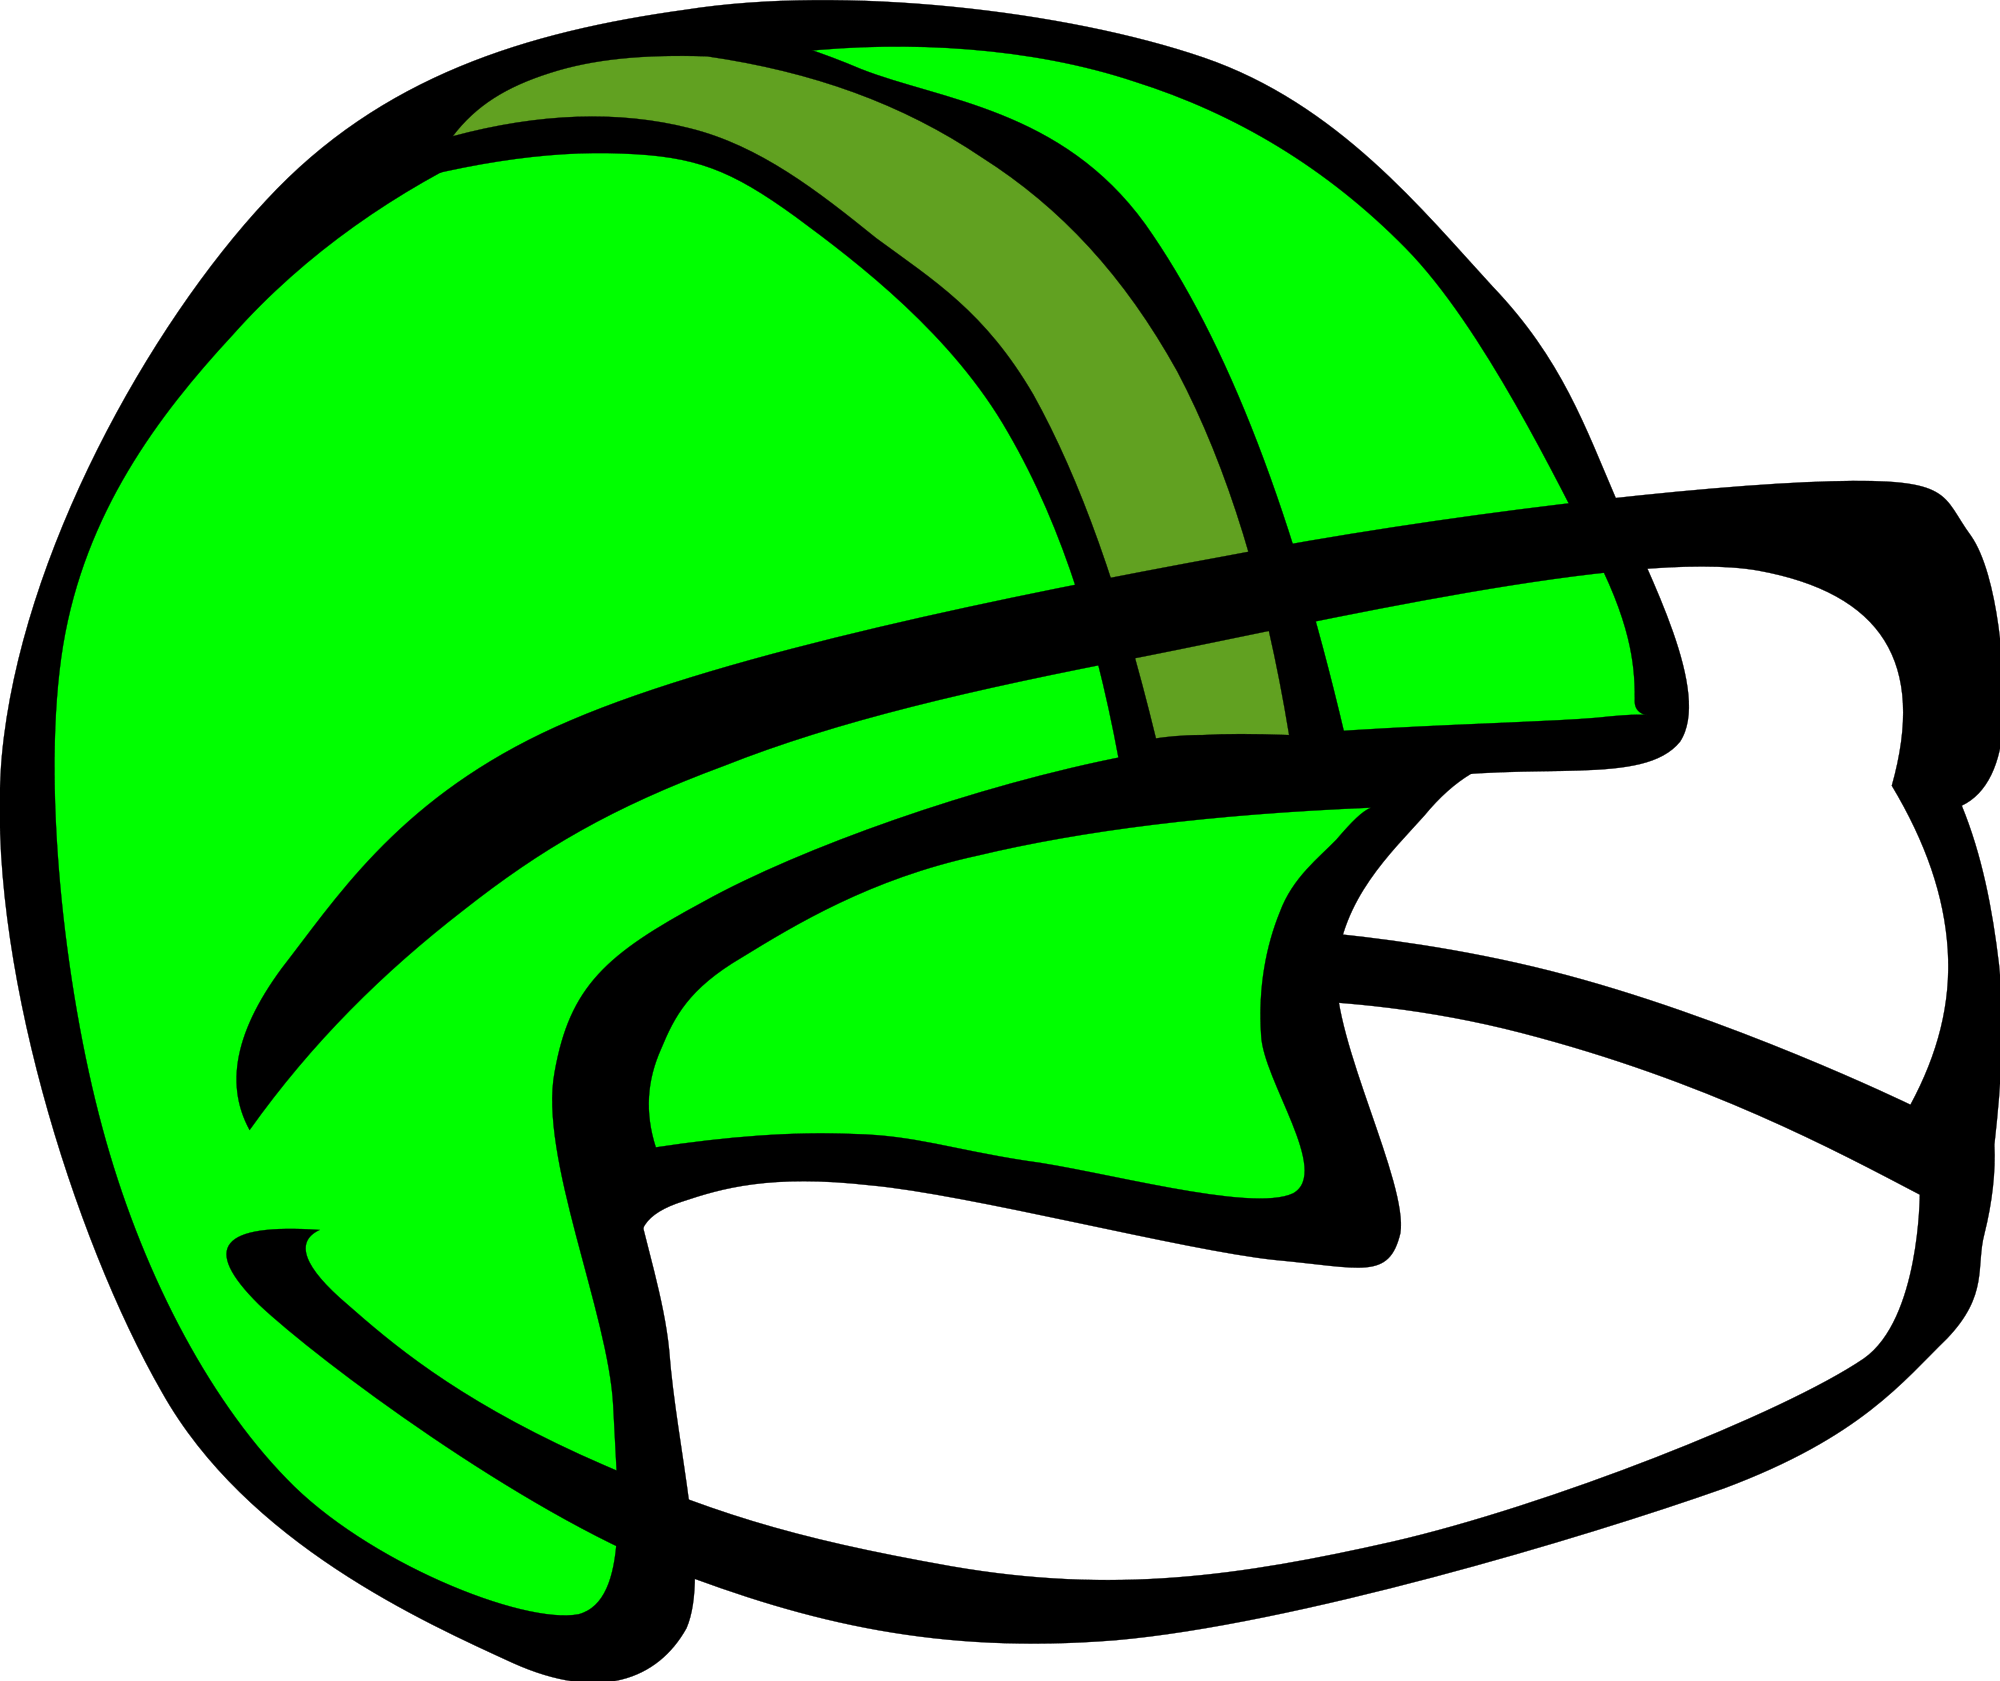 Front view football helmet clipart svg library library File:Football helmet gerald g 01.svg - Wikimedia Commons svg library library